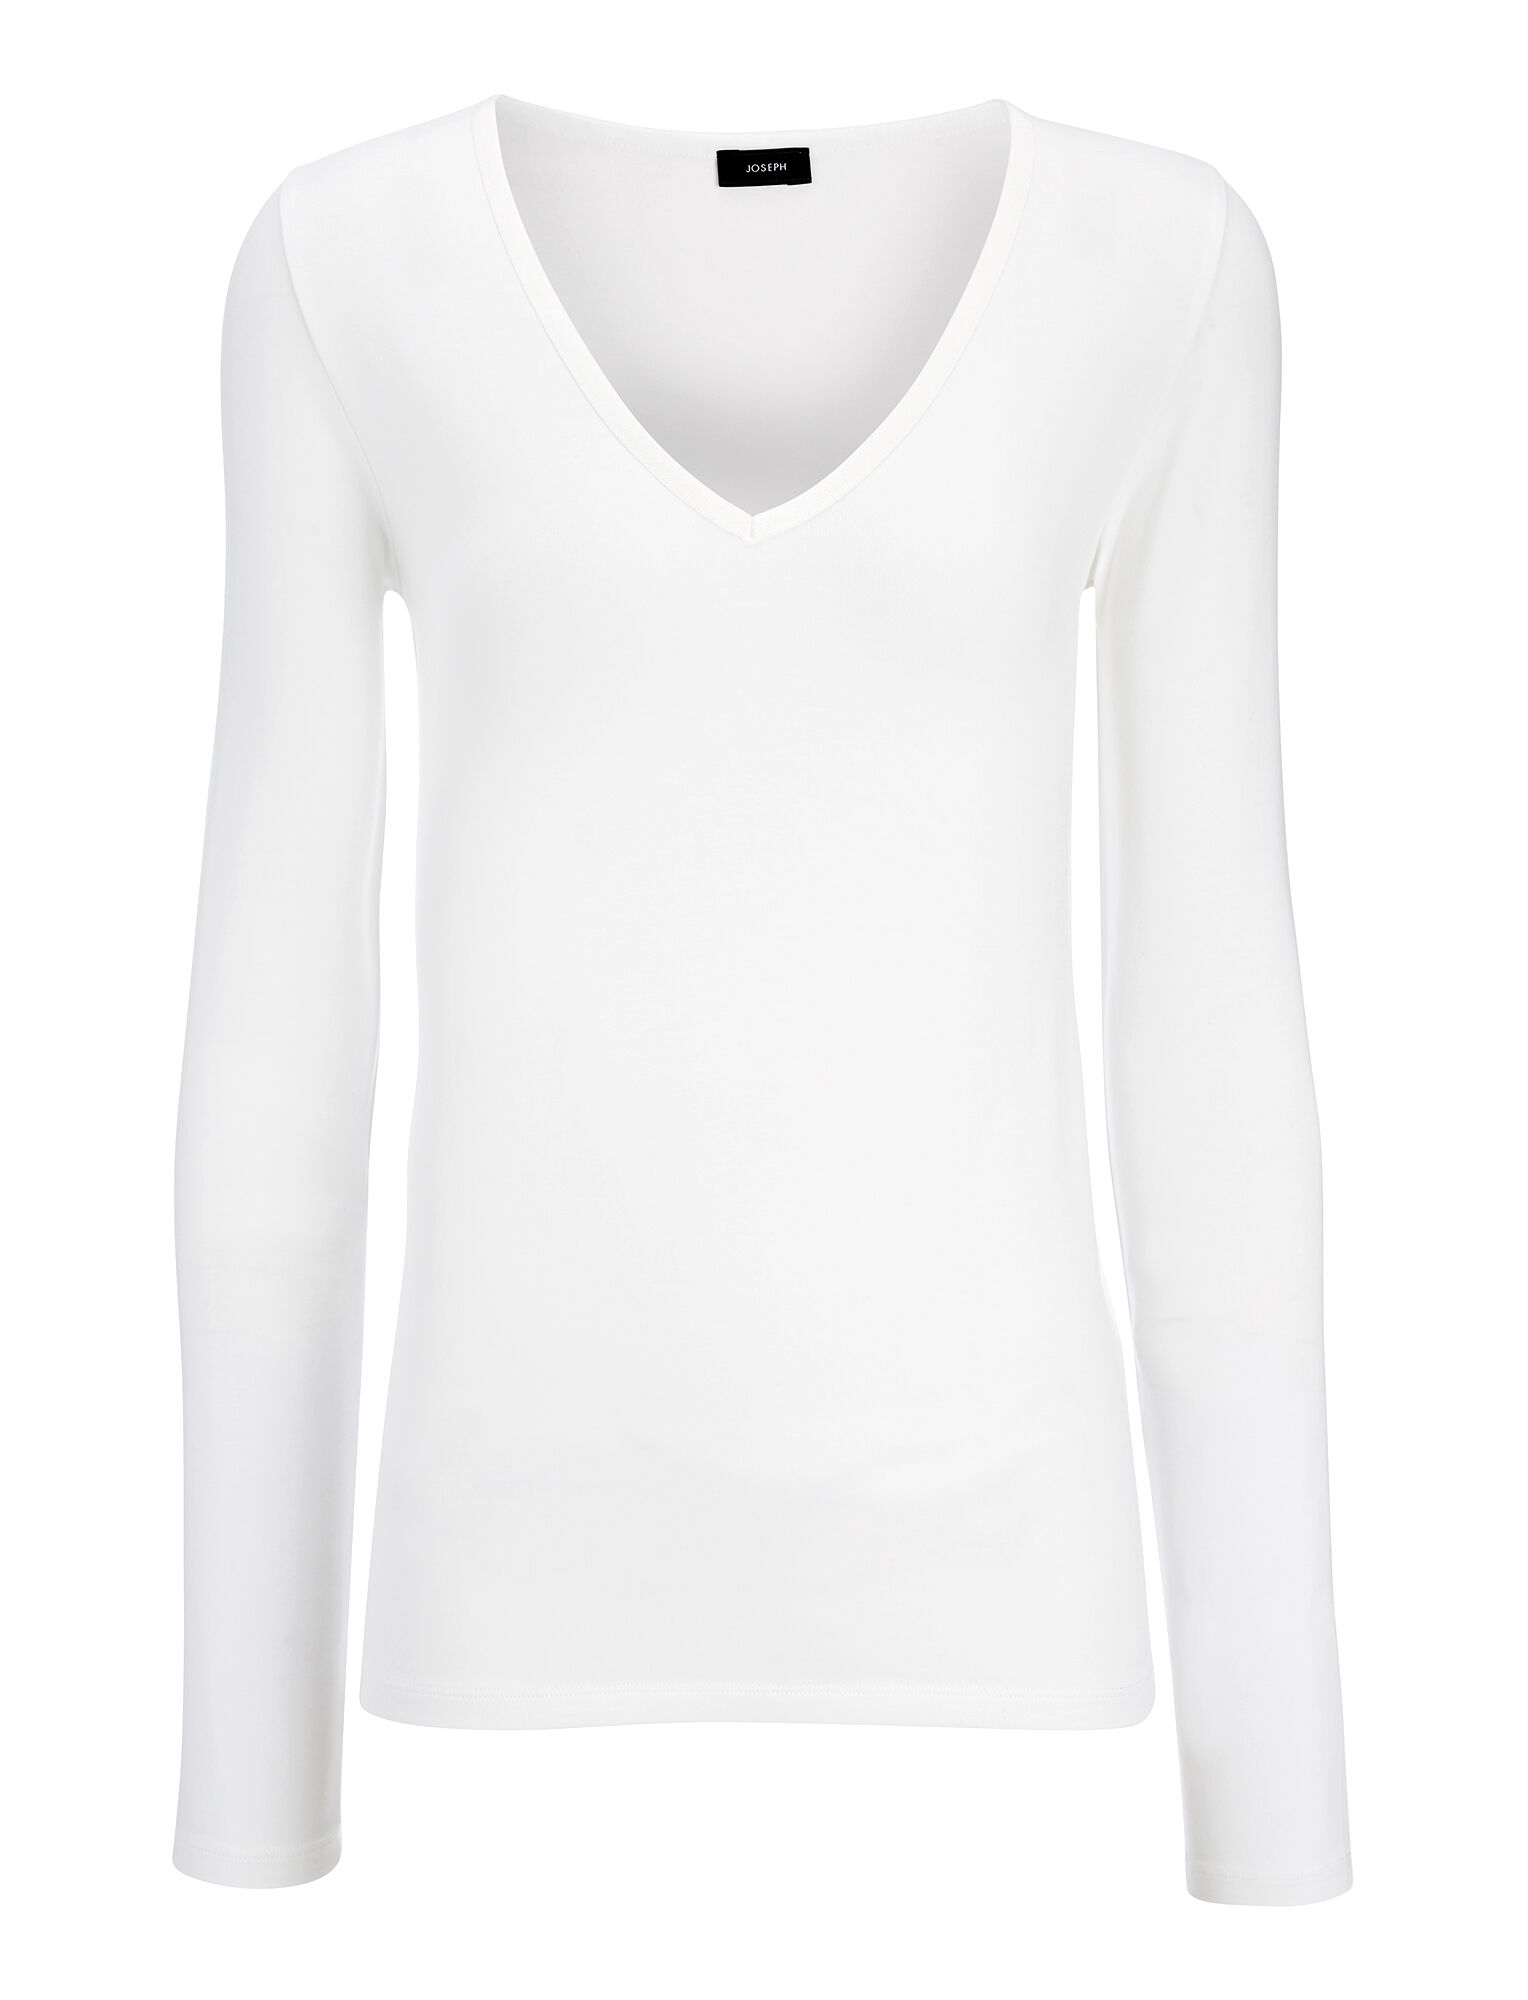 Joseph, Cotton Lyocell Stretch V Neck Top, in OFF WHITE